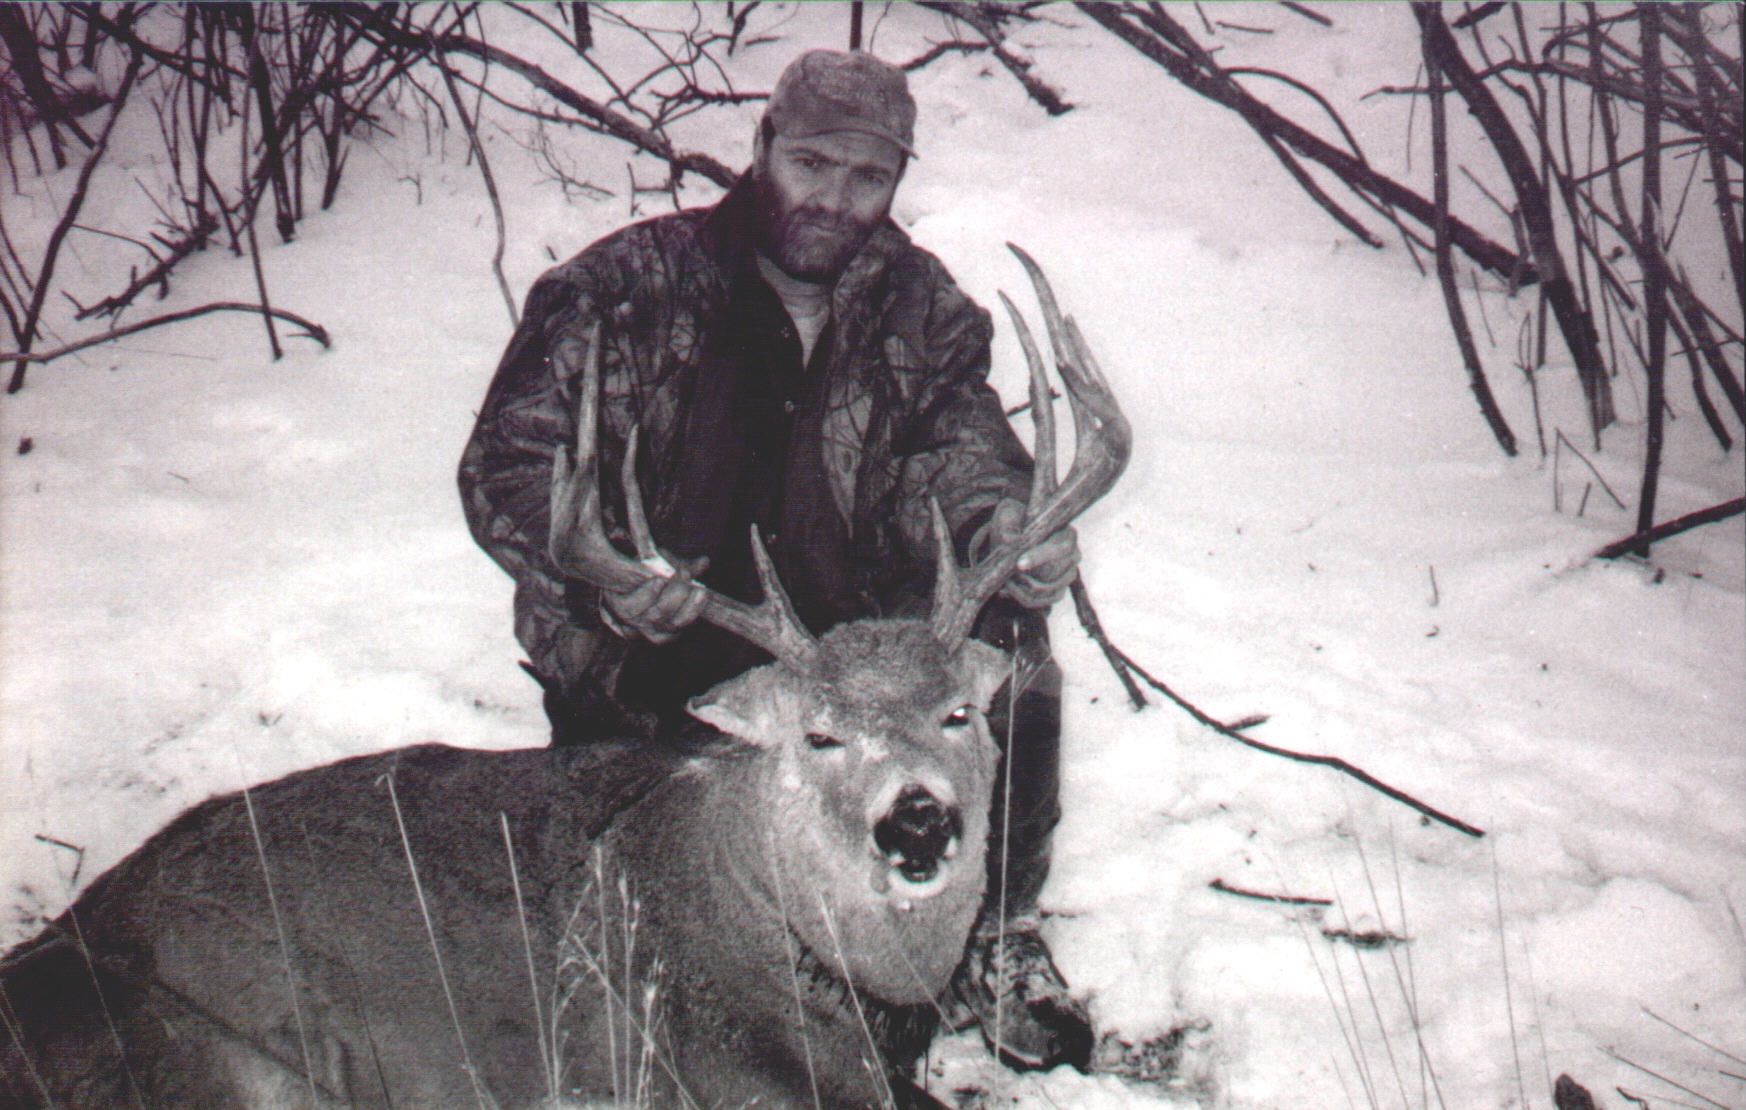 Jim Randesi with 157 Whitetail